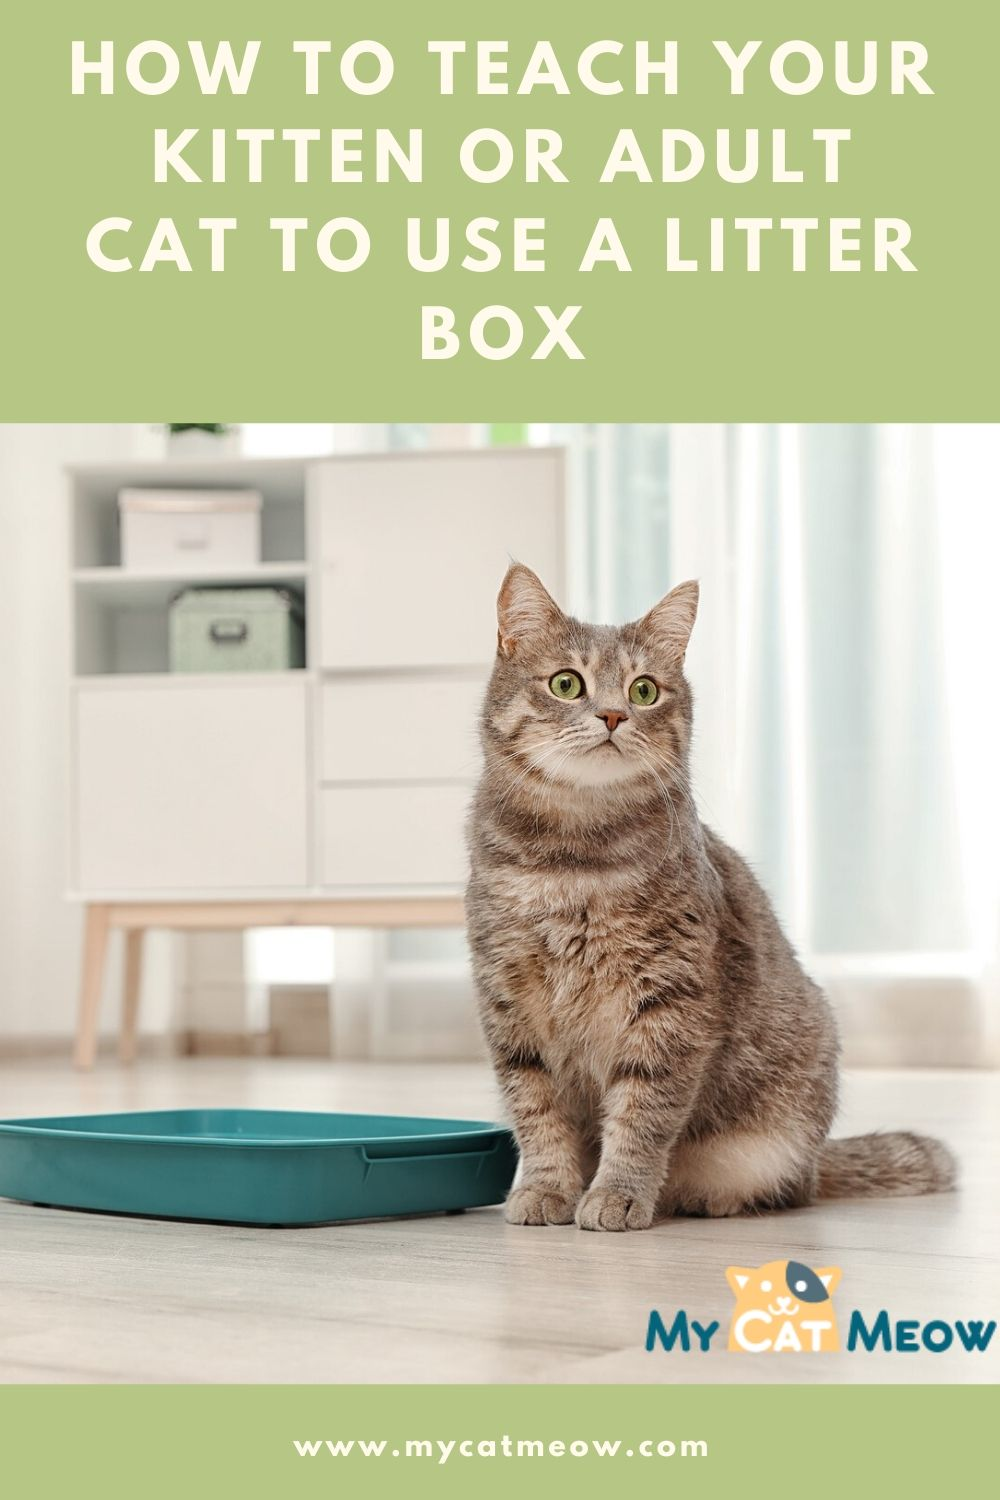 How to Teach your Kitten or Adult Cat to Use a Litter Box